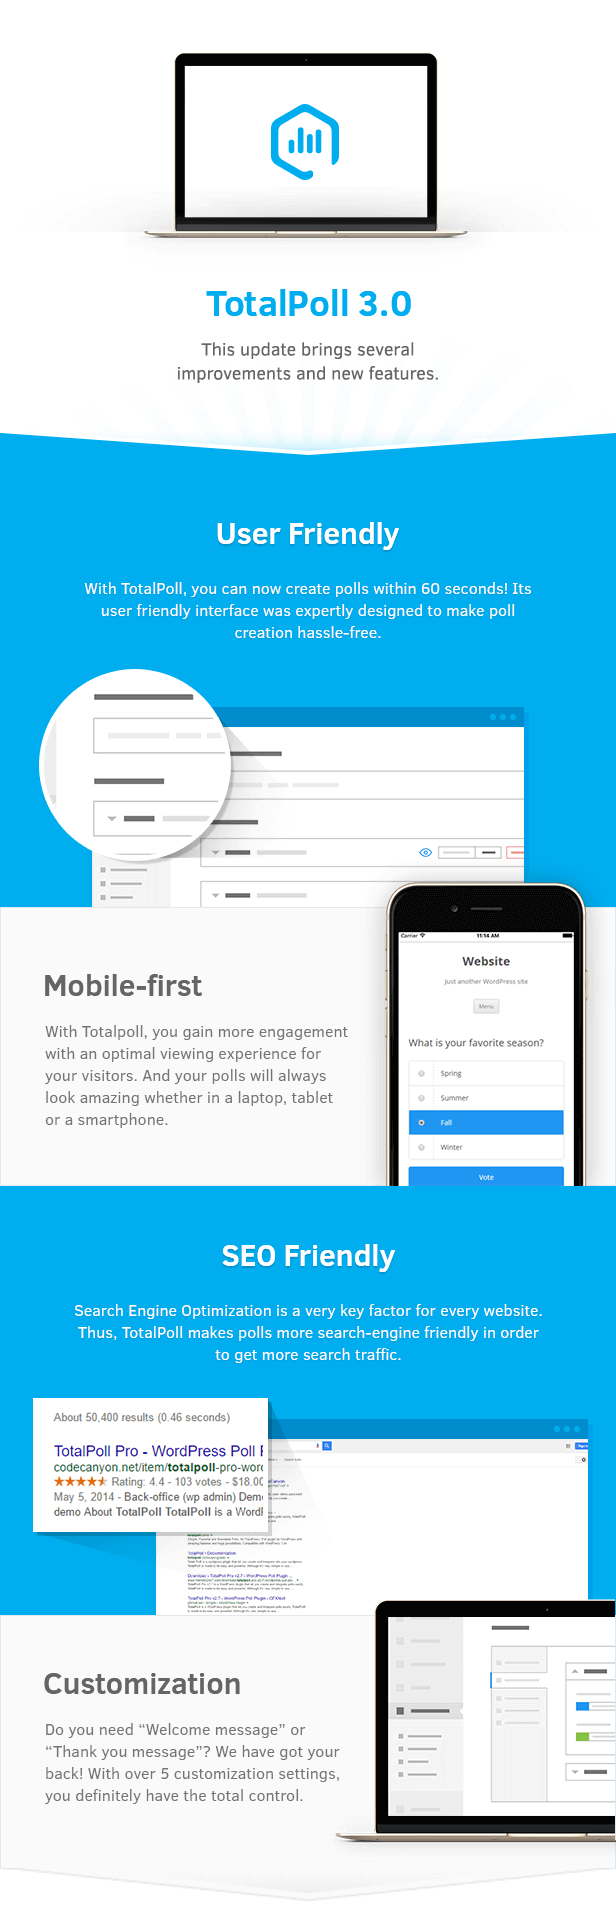 User Friendly, Mobile-first, SEO Friendly and Customization in TotalPoll WordPress poll plugin.  - 07 key features - TotalPoll Pro – Responsive WordPress Poll Plugin